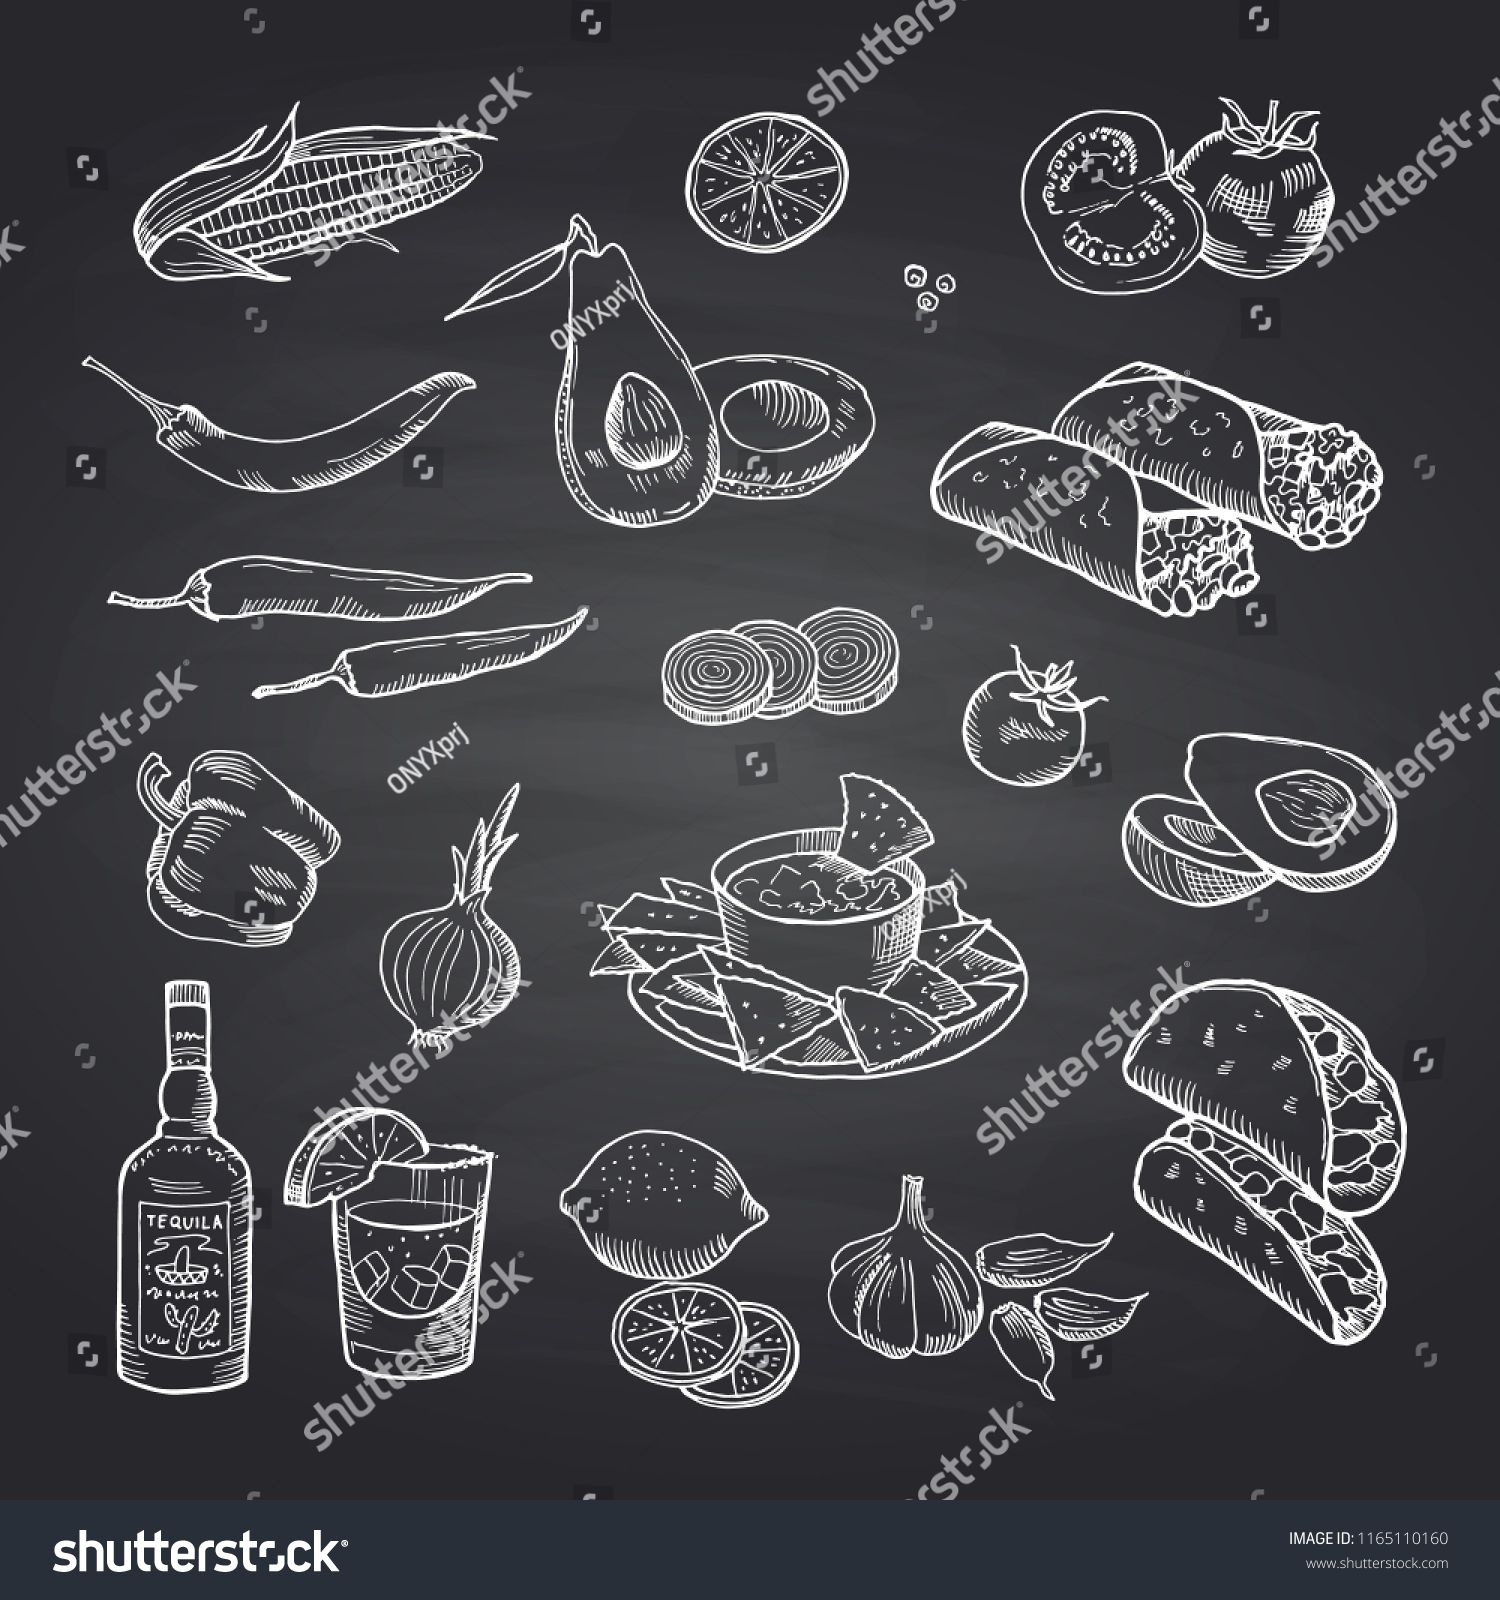 Vector Sketched Mexican Food Elements Set On Black Chalkboard Illustration Of Mexican Food Burrito And Taco Mexican Food Recipes Food Wall Art Vector Sketch